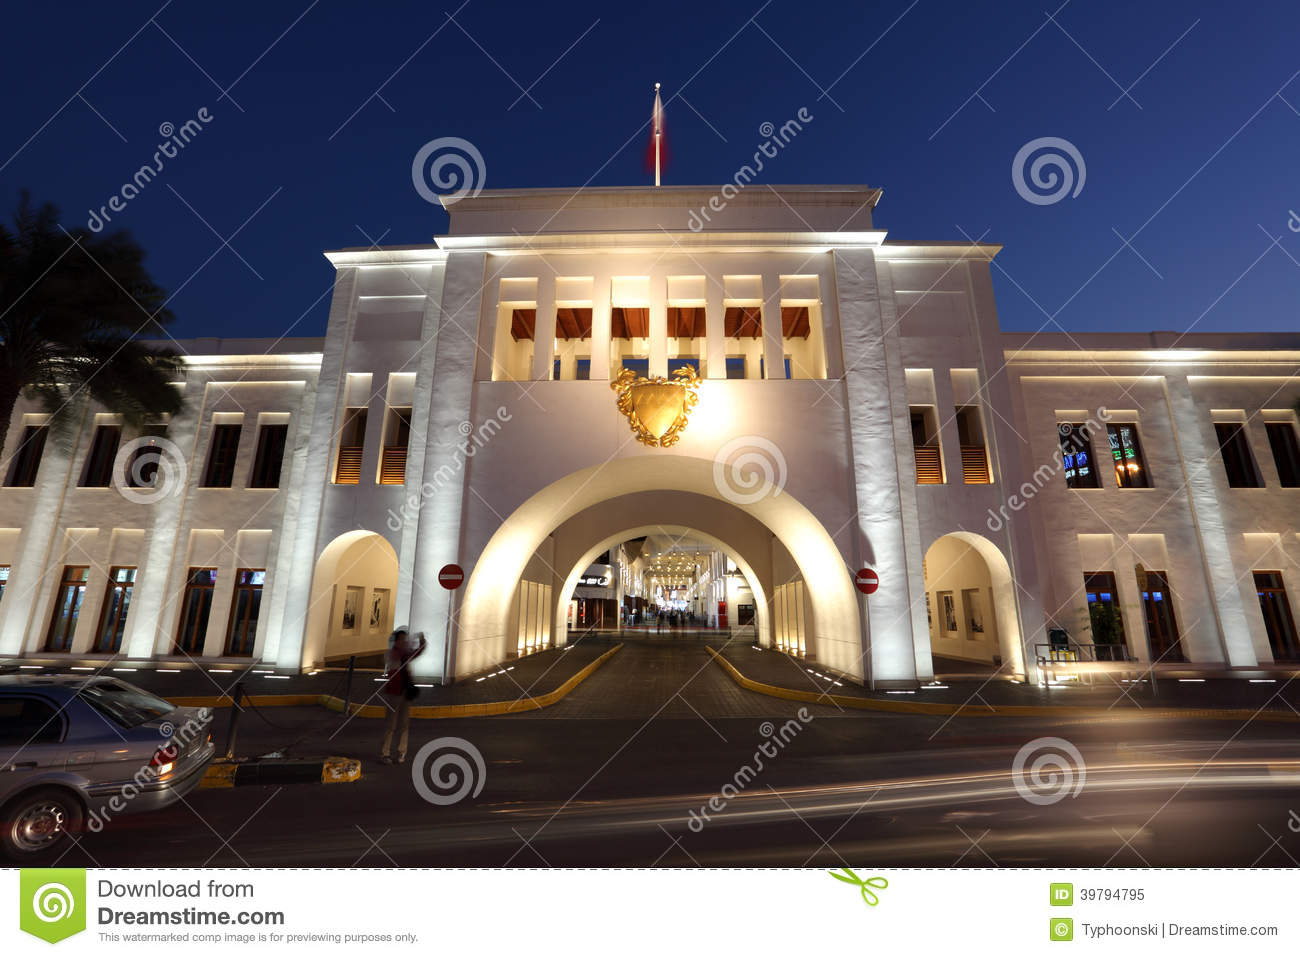 Bab el bahrain souk gate manama bahrein redactionele for United international decor bahrain